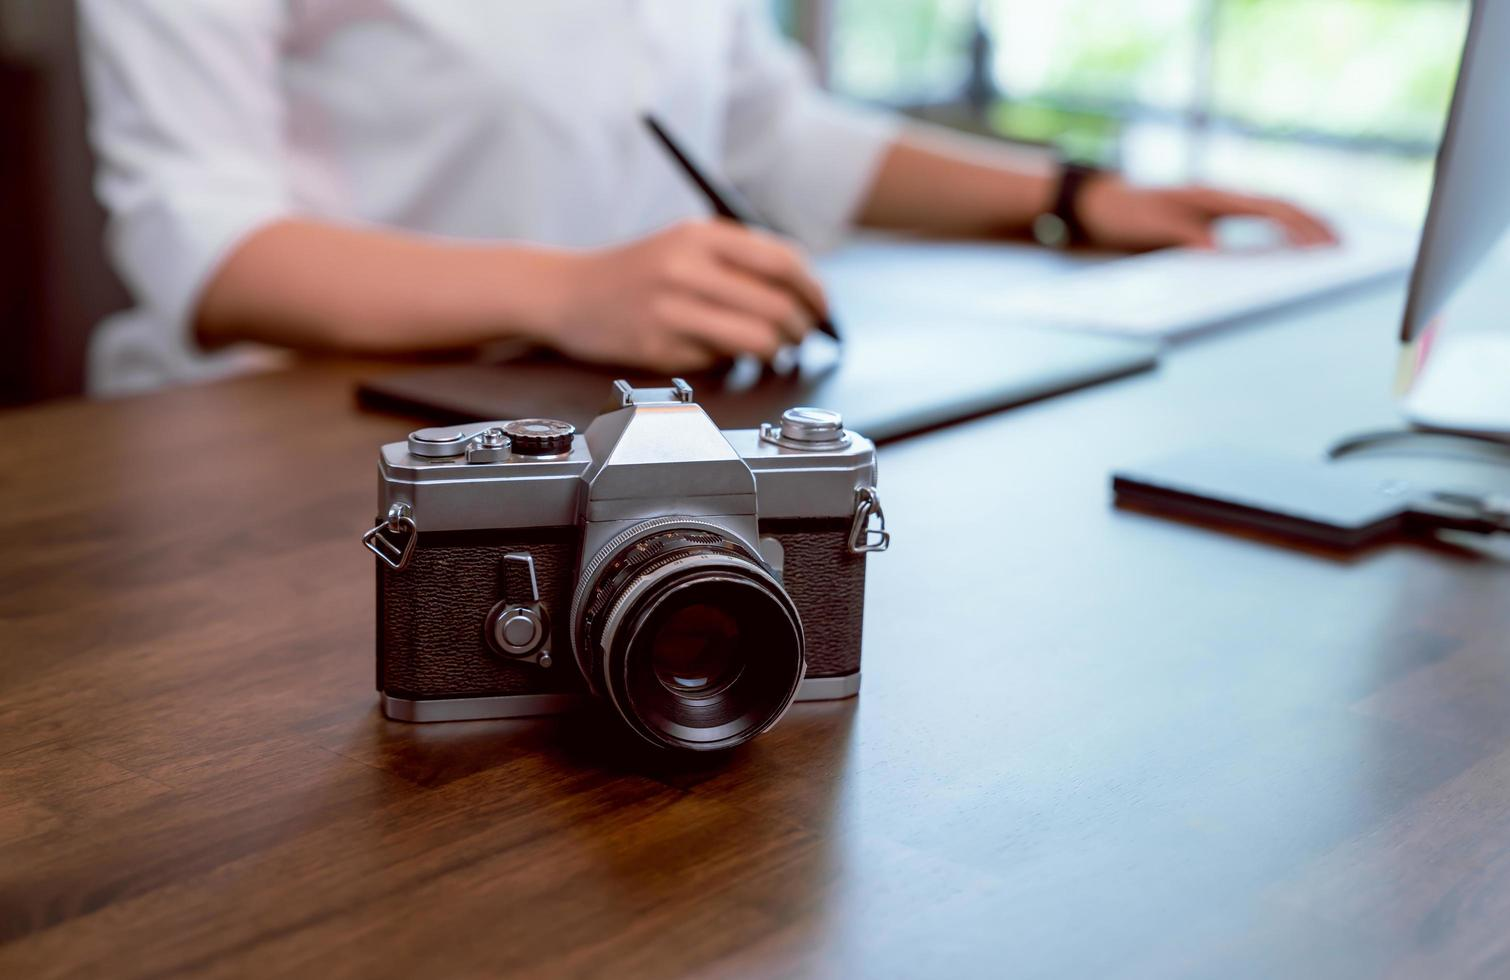 Film camera on desk with woman editing photos